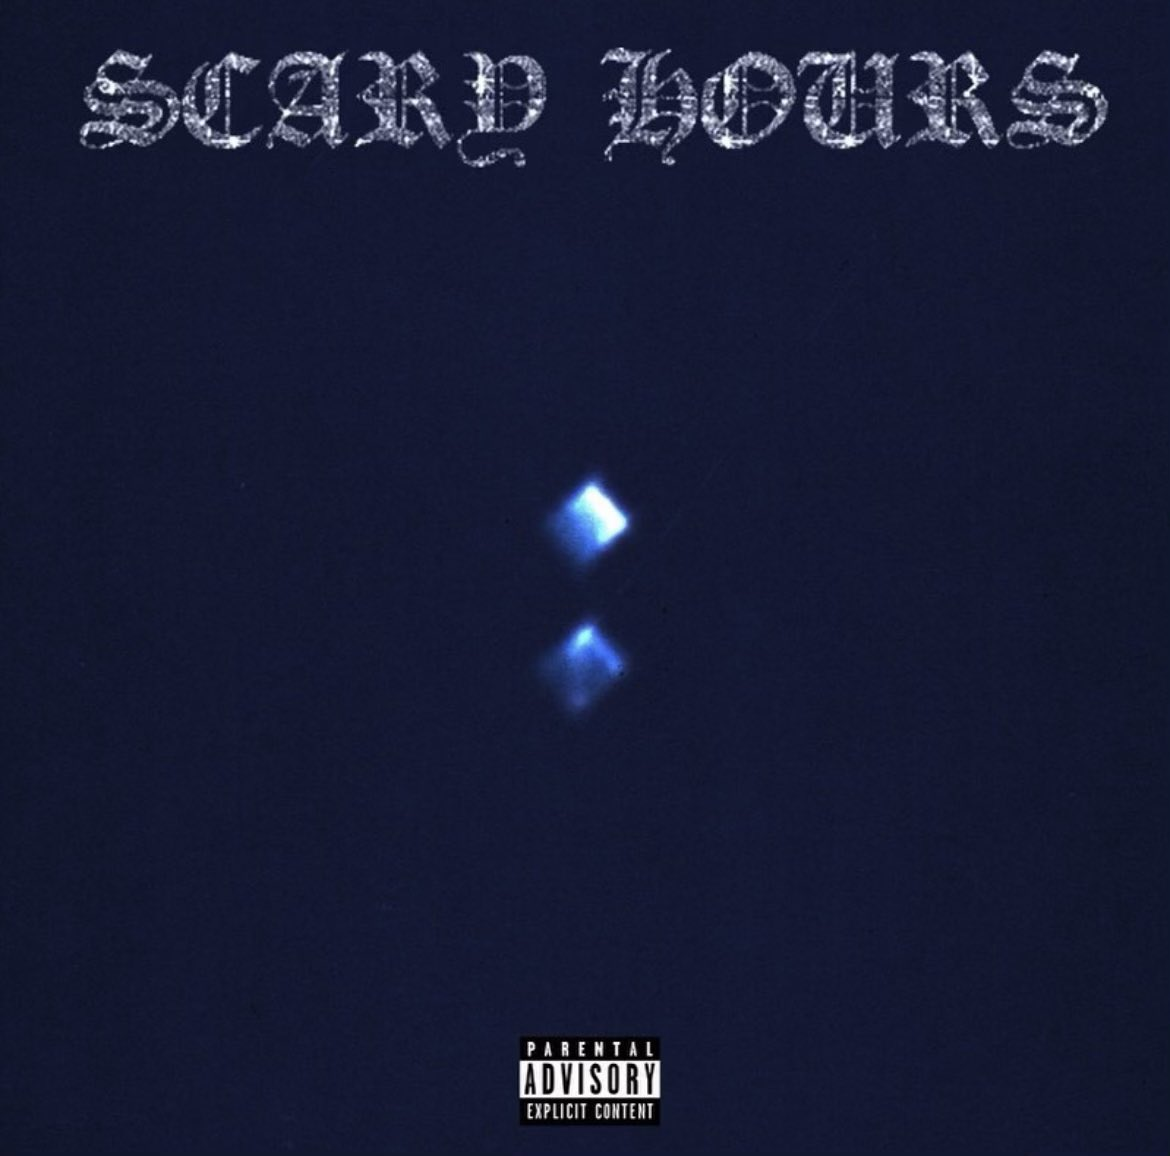 SCARY HOURS https://t.co/kDM7vuuq5e https://t.co/8Z43SdI5w7